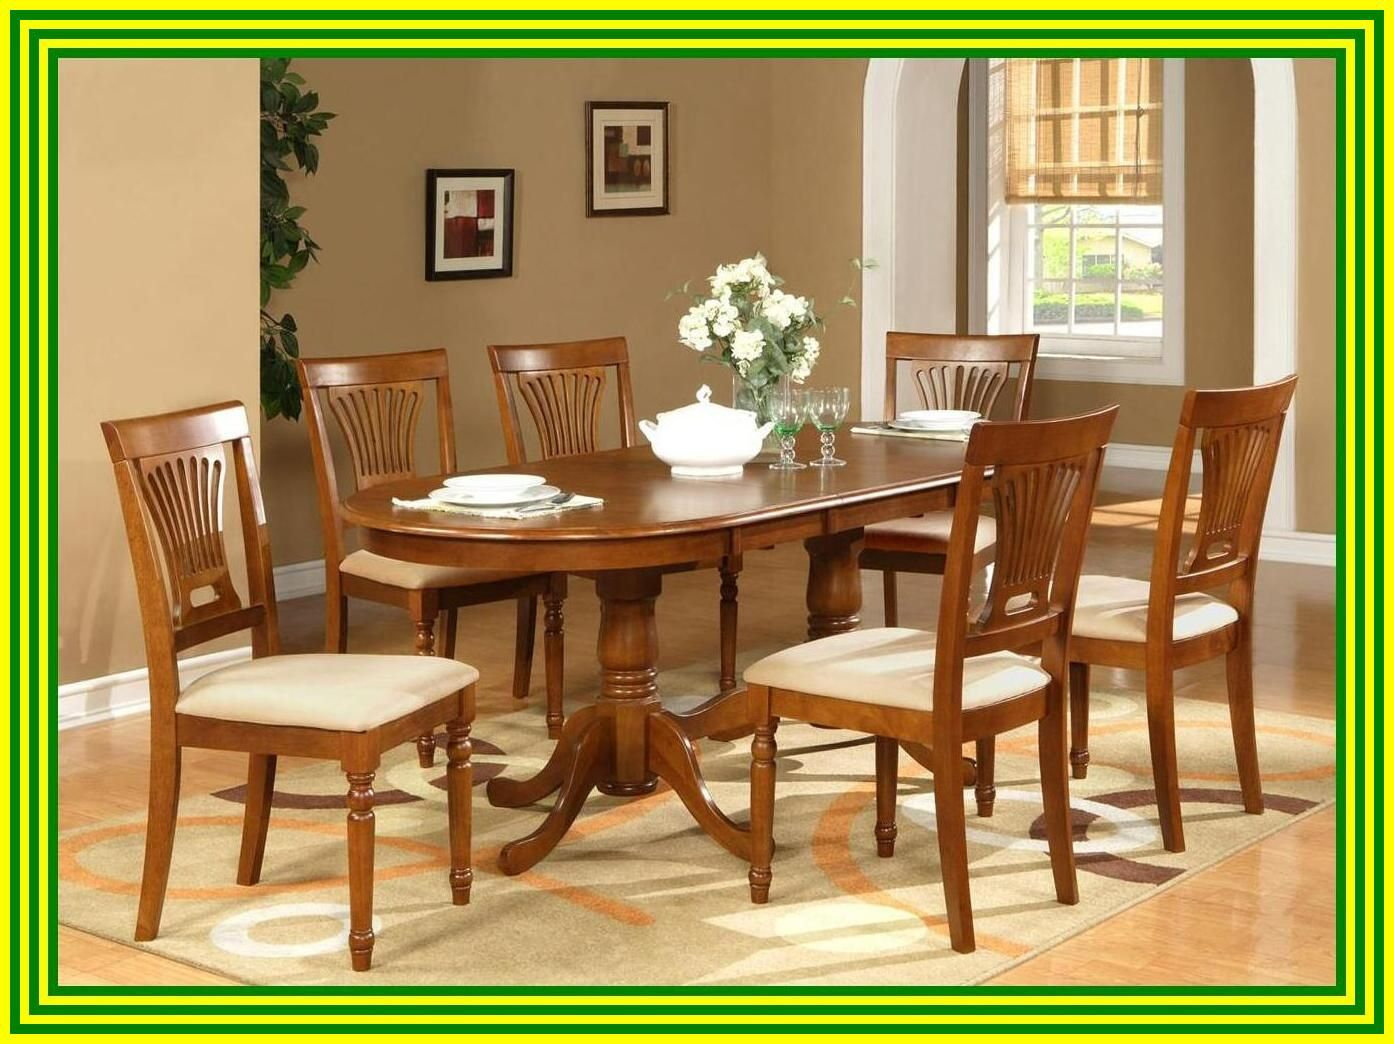 40 Reference Of 6 Chair Wood Dining Table Dining Table Chairs Cheap Dining Room Chairs Dining Table